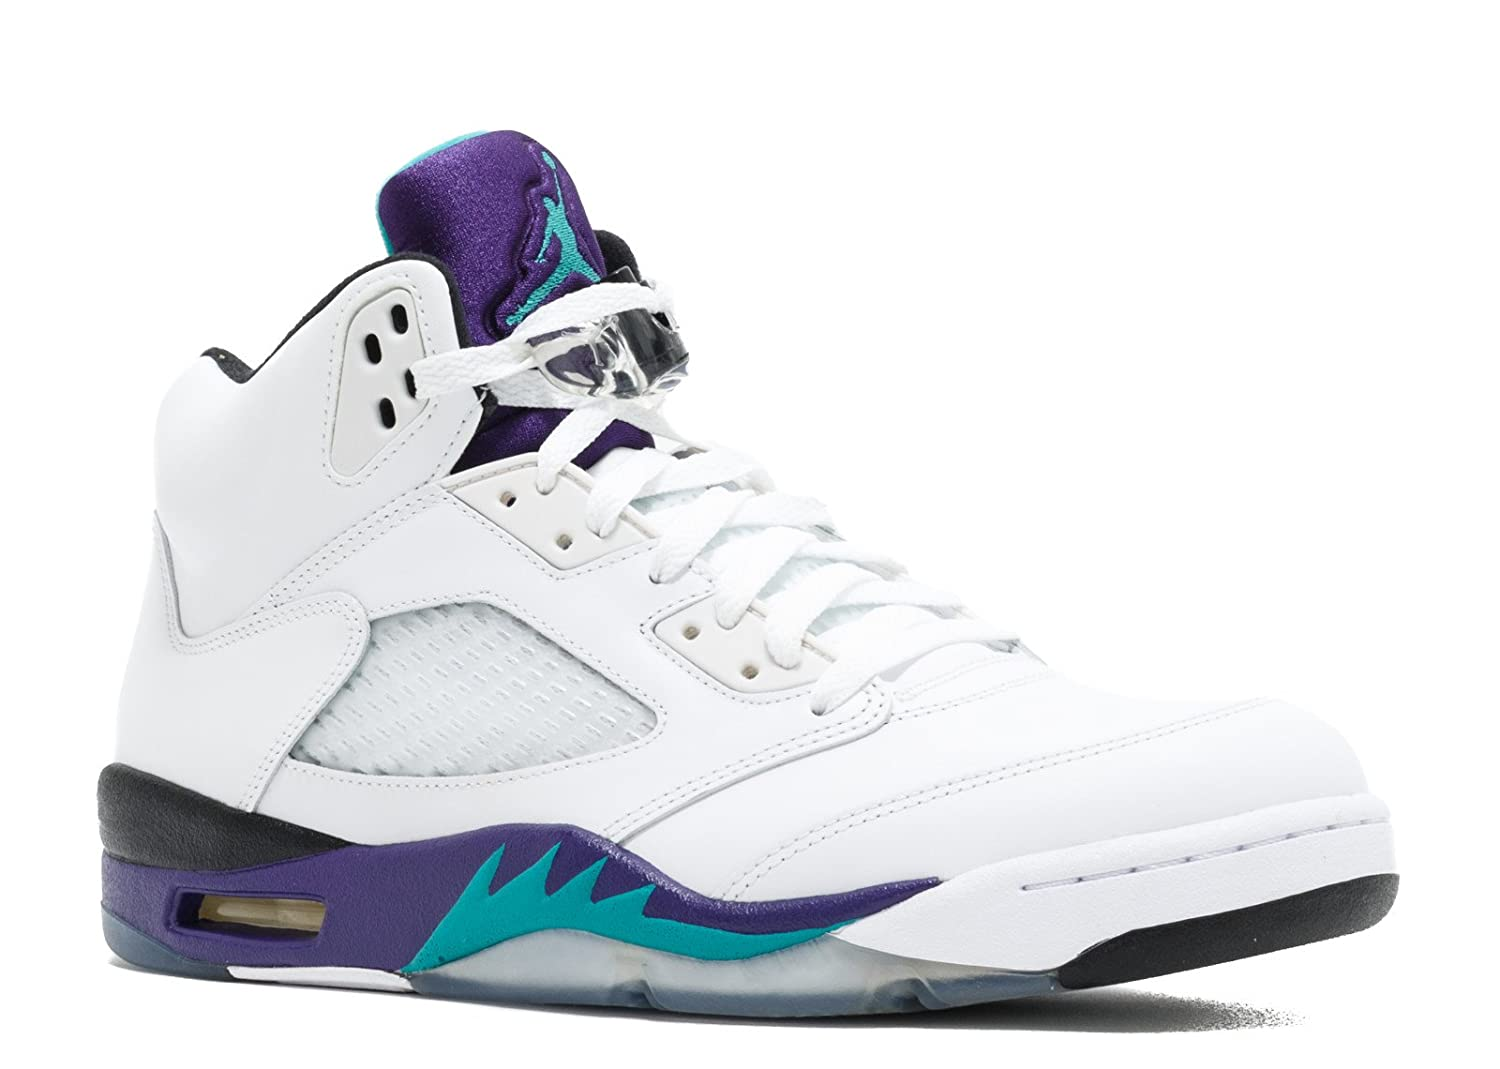 White   New Emerald Grape   Ice   Black Nike Men's Air Jordan 5 Retro Basketball shoes